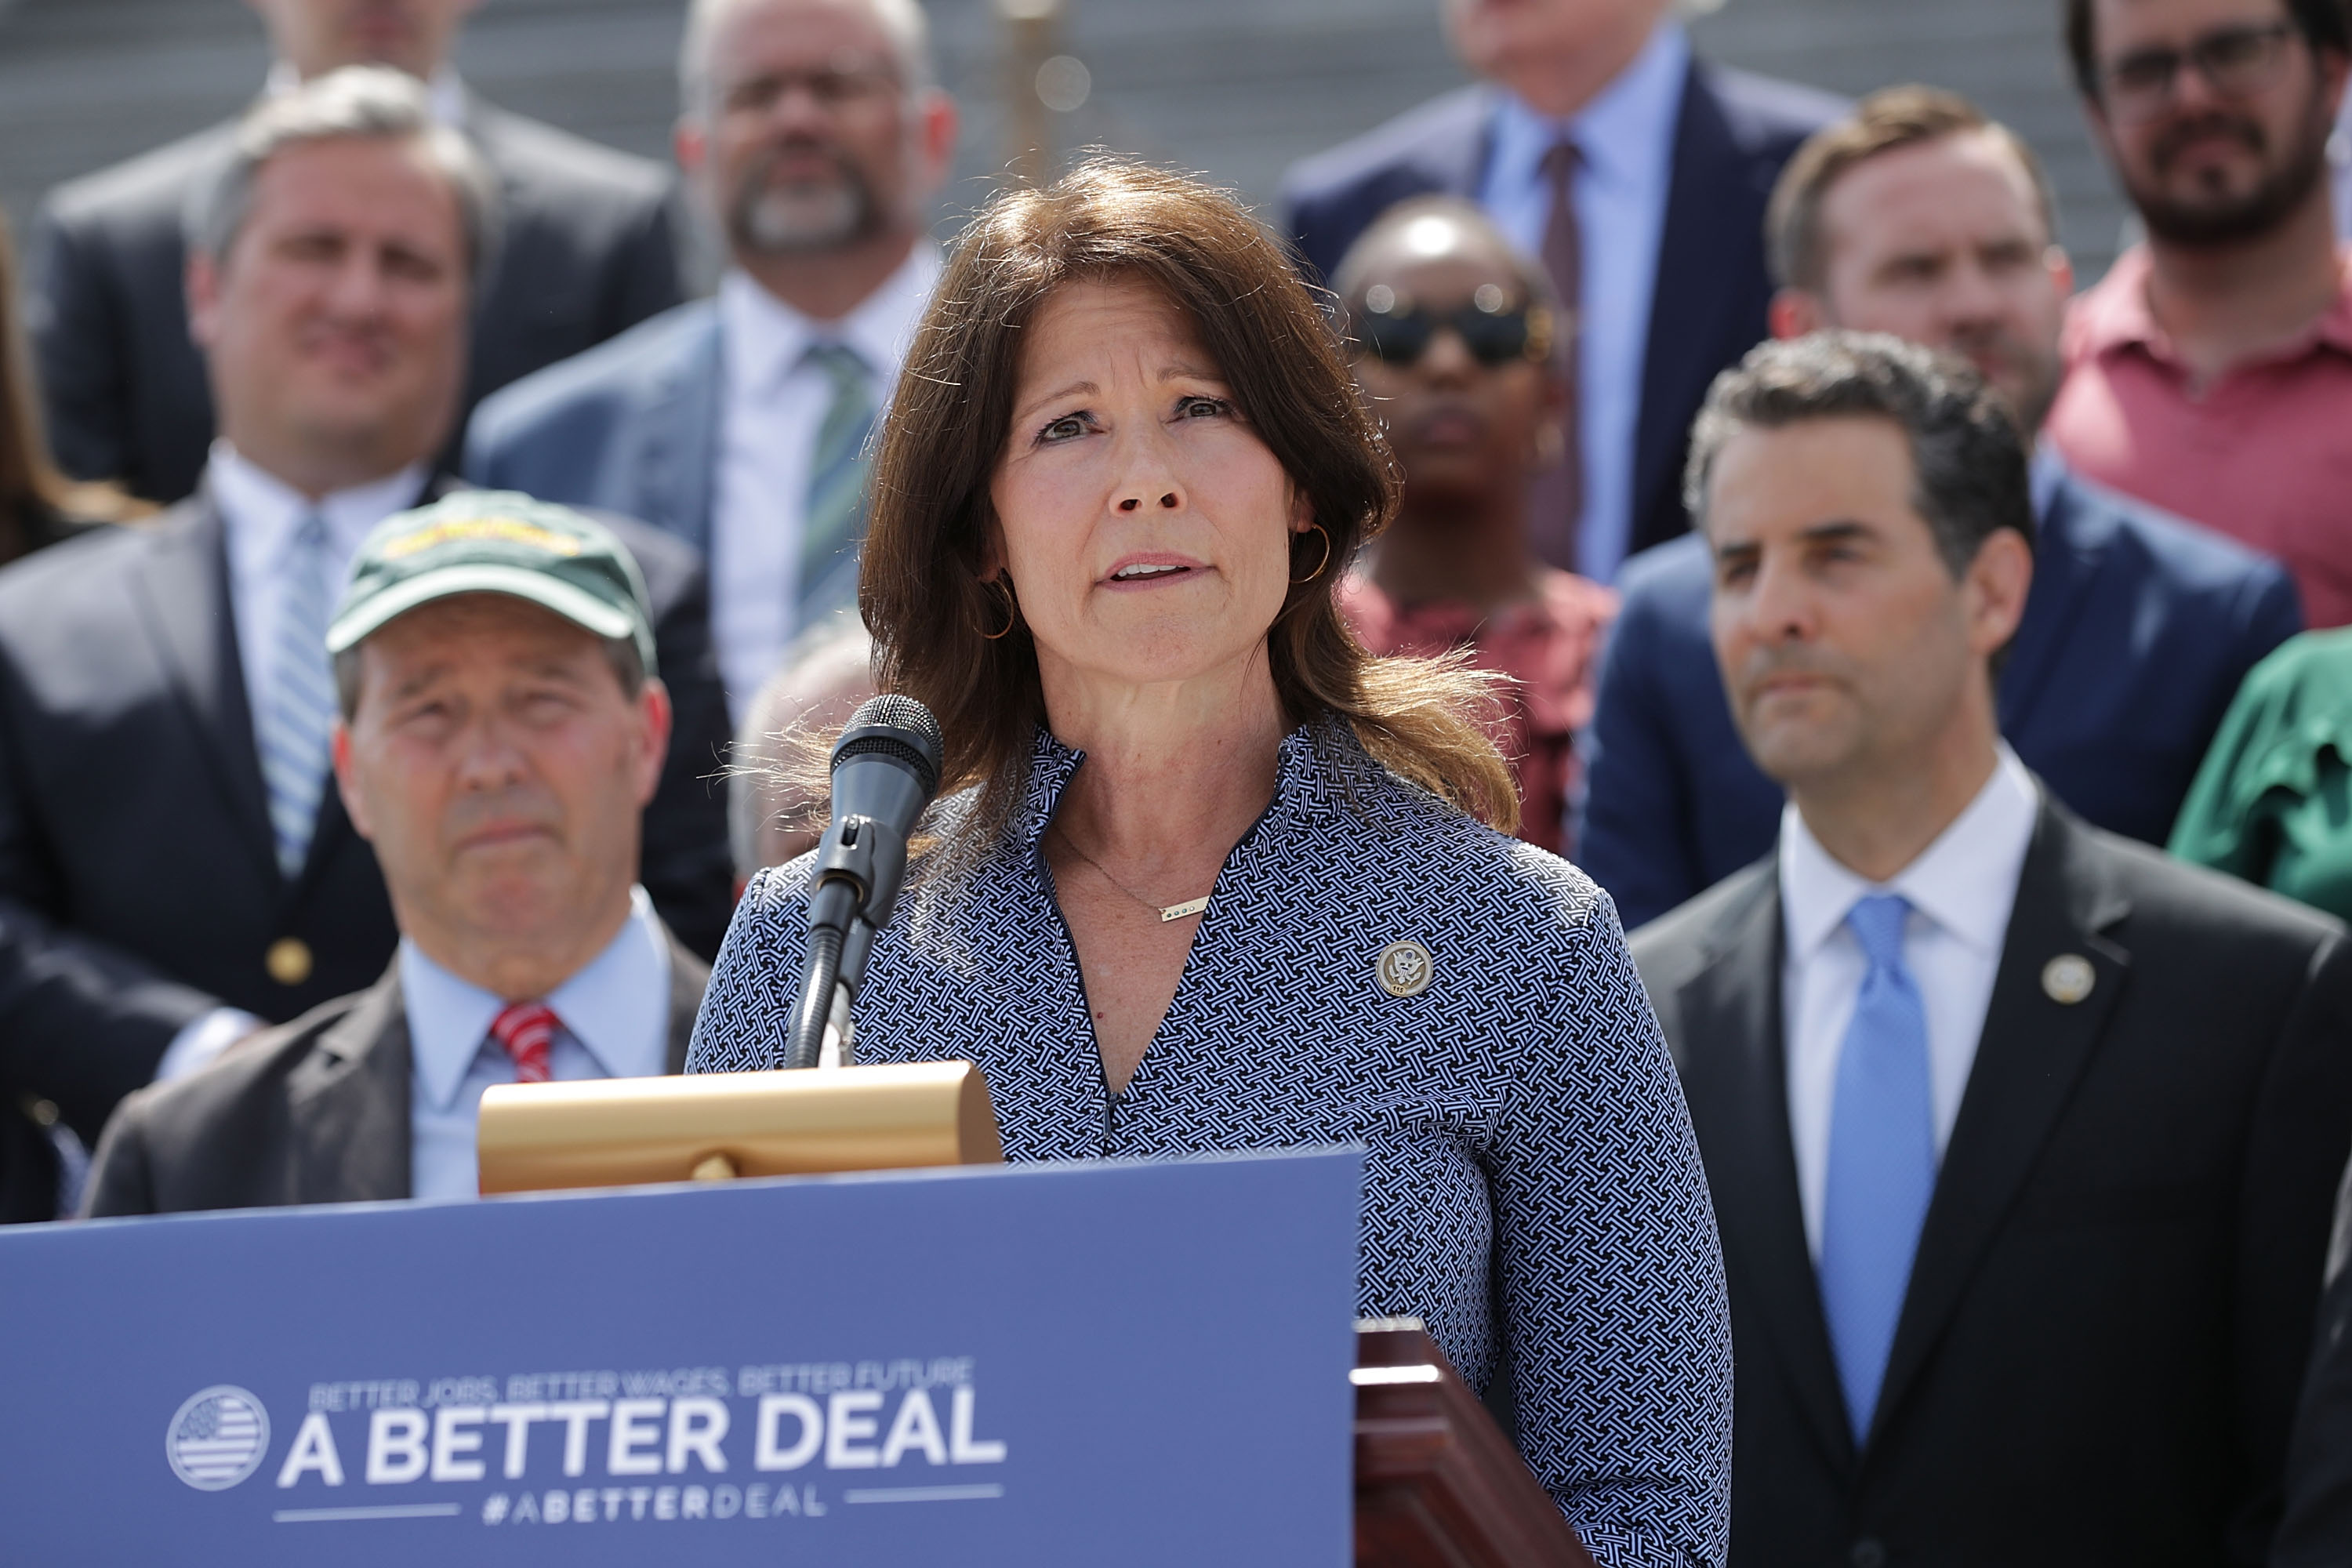 Rep. Cheri Bustos (D-IL) joins a group of fellow Democrats and their supporters to introduce a new campaign to retake Congress during a news conference at the U.S. Capitol May 21, 2018 in Washington, DC. The campaign, called 'A Better Deal for Our Democracy,' aims at 'taking back the power from special interests and getting rid of the pay-to-play culture of corruption, cronyism and incompetence embodied by the Trump Administration.' (Photo by Chip Somodevilla/Getty Images)